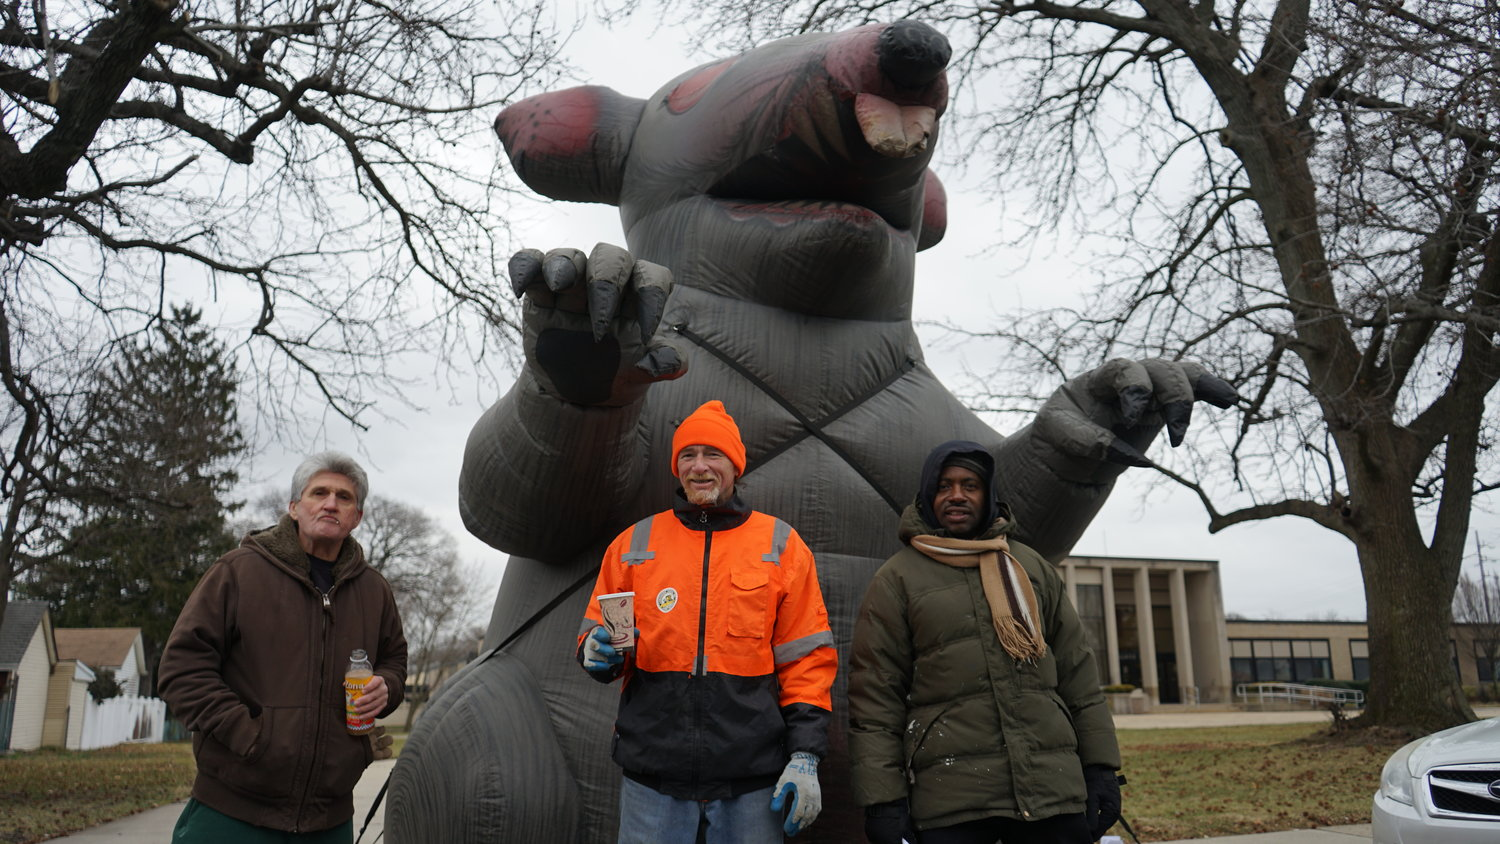 Members of Local 66 had placed an inflatable rat outside Village Hall in response to rumors that non-union labor was being used for a village construction project. The contractor hired to carry out the work has since agreed to bring Local 66 workers onto the job.